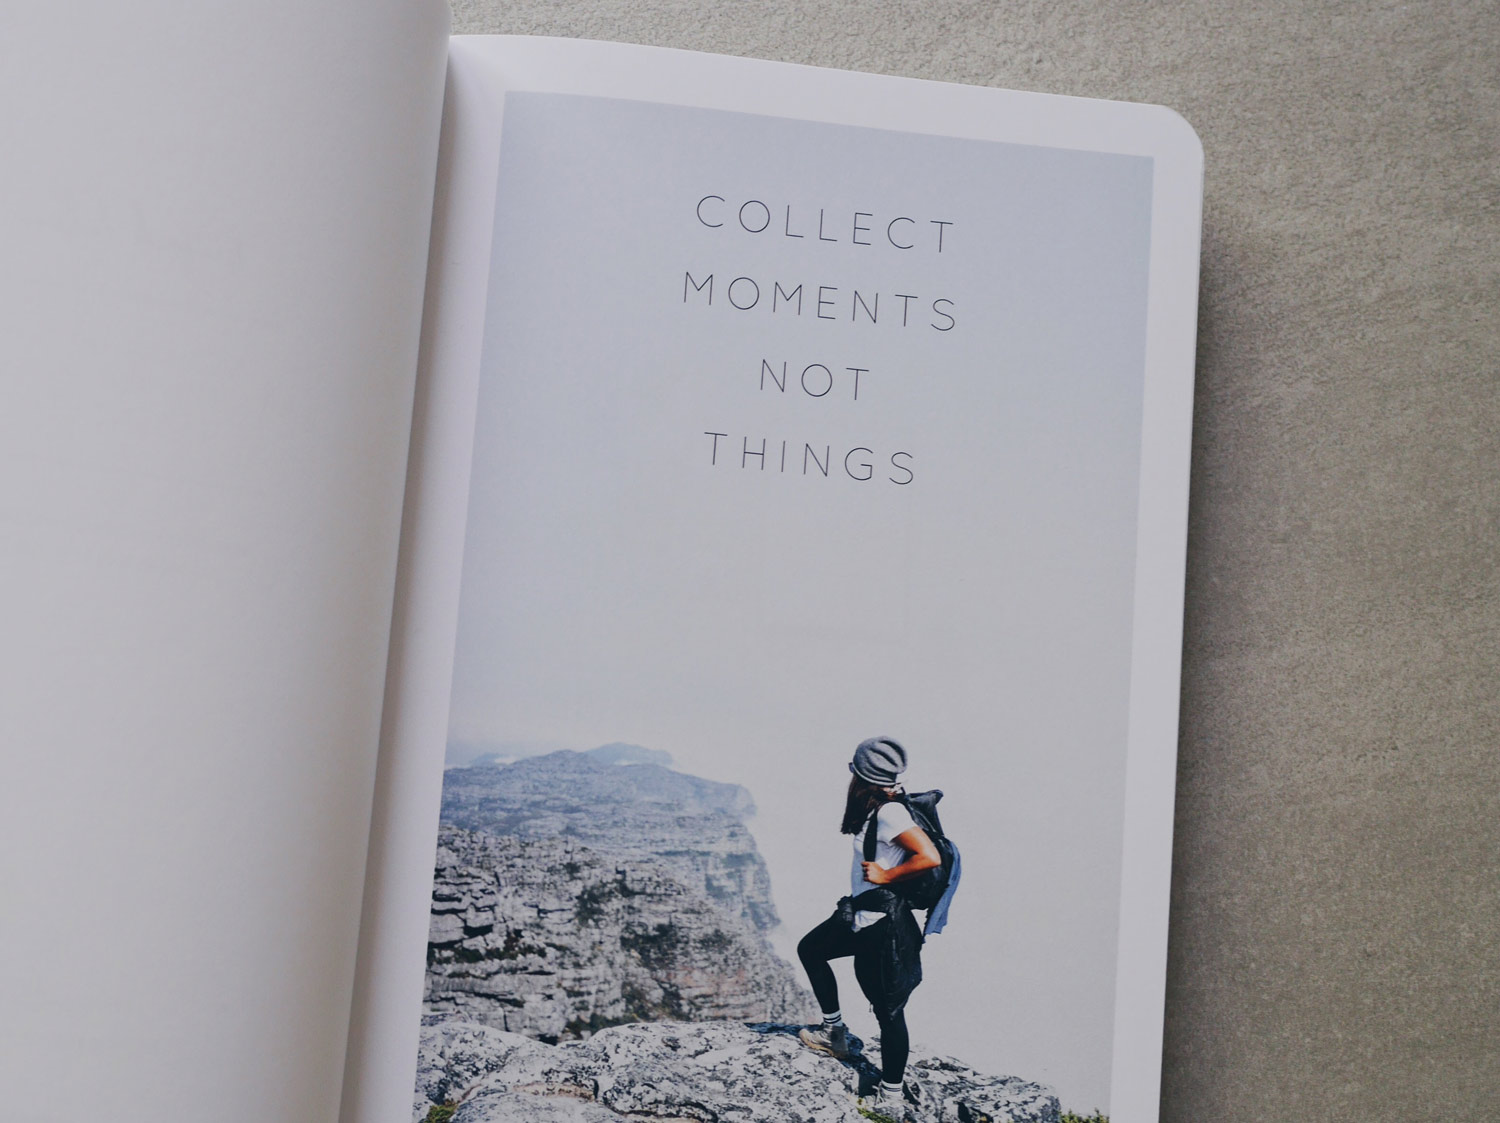 Collect moments not things Blogprojekt